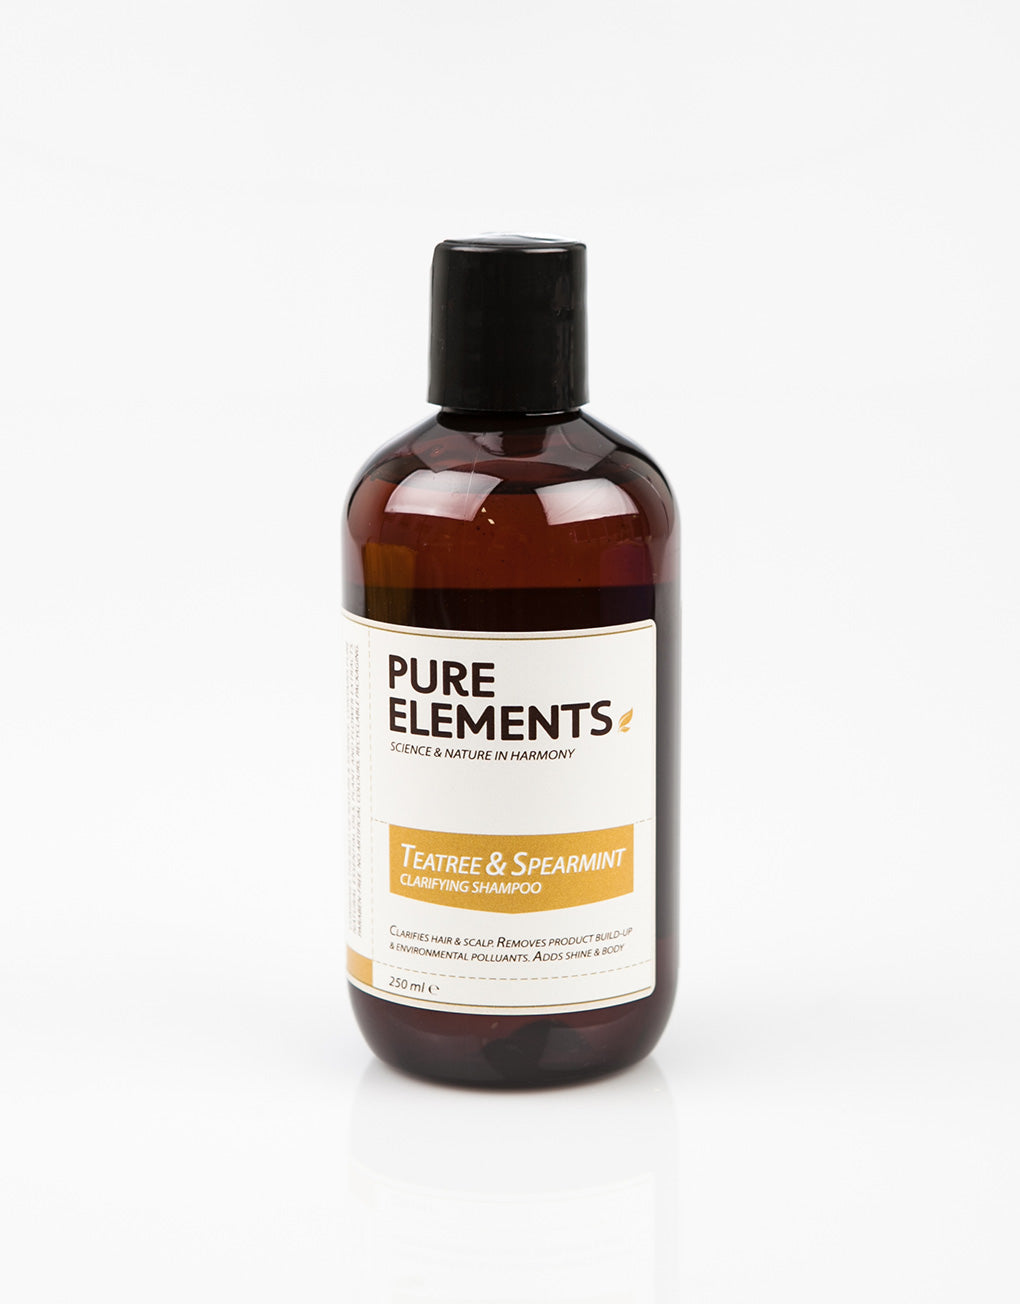 Pure Elements Tea Tree & Spearmint Shampoo 250 ml